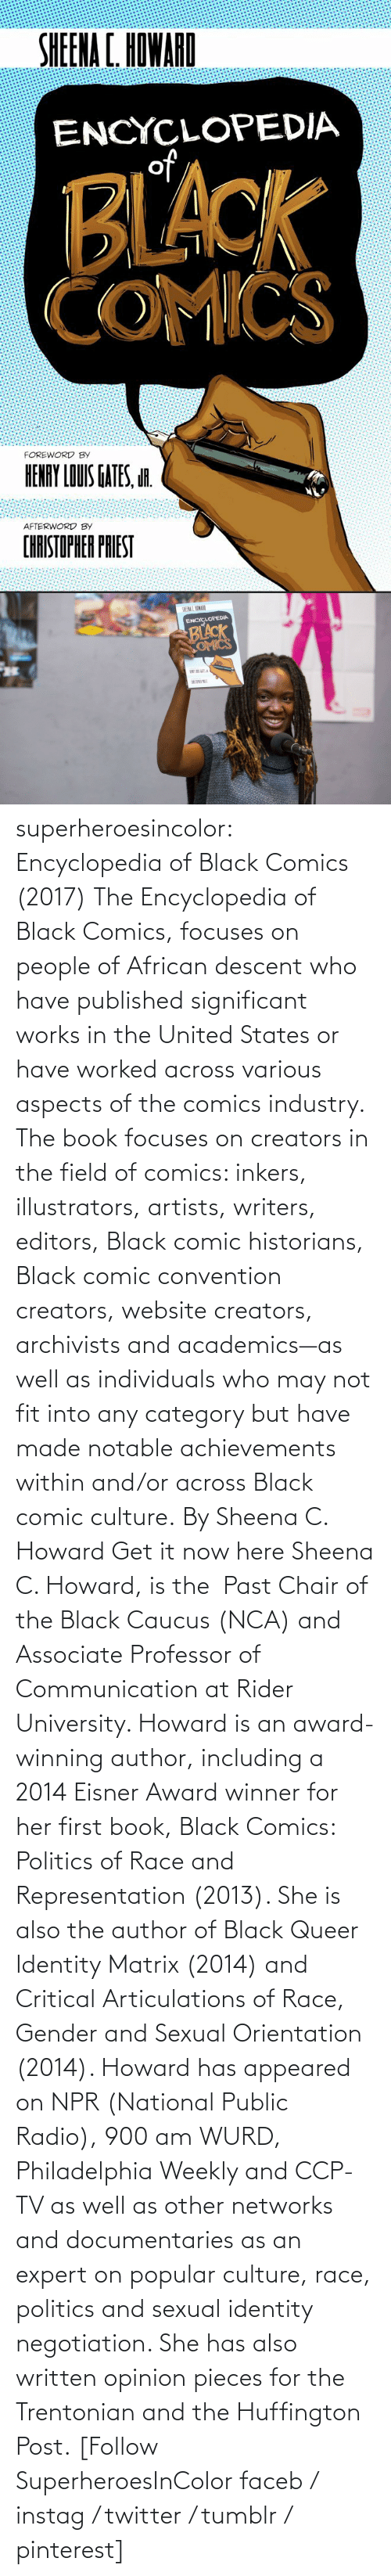 M: superheroesincolor: Encyclopedia of Black Comics (2017) The Encyclopedia of Black Comics, focuses on people of African descent who have published significant works in the United States or have worked across various aspects of the comics industry.  The book focuses on creators in the field of comics: inkers, illustrators, artists, writers, editors, Black comic historians, Black comic convention creators, website creators, archivists and academics—as well as individuals who may not fit into any category but have made notable achievements within and/or across Black comic culture. By Sheena C. Howard Get it now here  Sheena C. Howard, is the  Past Chair of the Black Caucus (NCA) and Associate Professor of Communication at Rider University. Howard is an award-winning author, including a 2014 Eisner Award winner for her first book, Black Comics: Politics of Race and Representation (2013). She is also the author of Black Queer Identity Matrix (2014) and Critical Articulations of Race, Gender and Sexual Orientation (2014). Howard has appeared on NPR (National Public Radio), 900 am WURD, Philadelphia Weekly and CCP-TV as well as other networks and documentaries as an expert on popular culture, race, politics and sexual identity negotiation. She has also written opinion pieces for the Trentonian and the Huffington Post.   [Follow SuperheroesInColor faceb / instag / twitter / tumblr / pinterest]